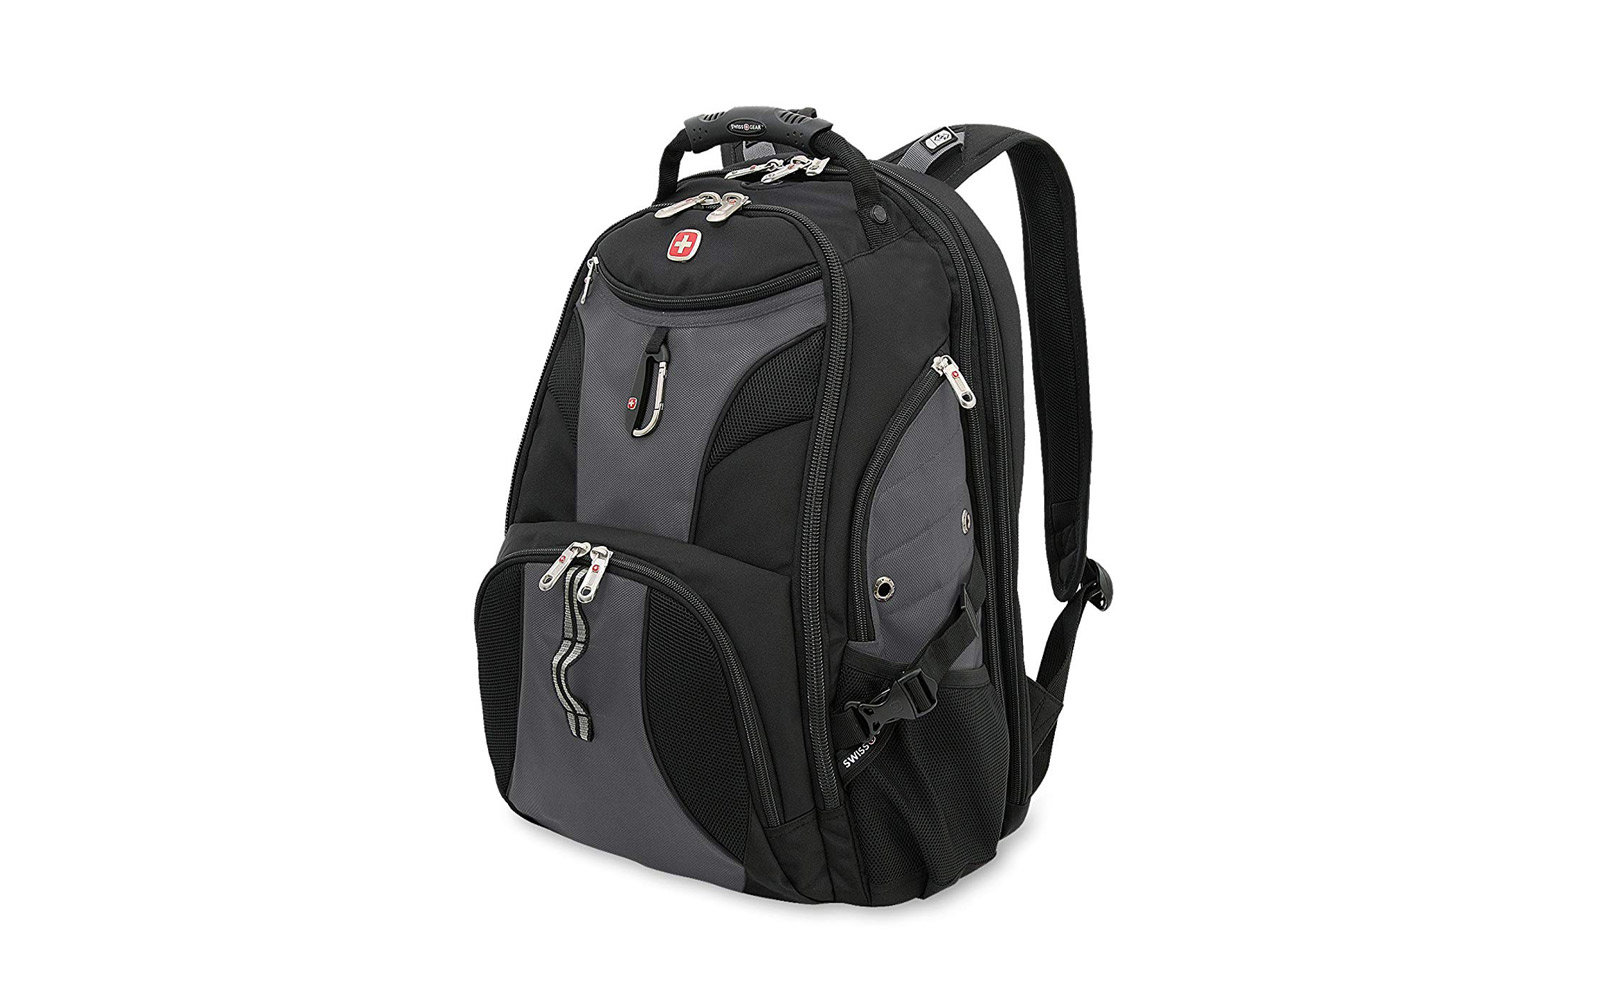 616d5d03b7f6 Best TSA-friendly Laptop Backpack  SwissGear ScanSmart